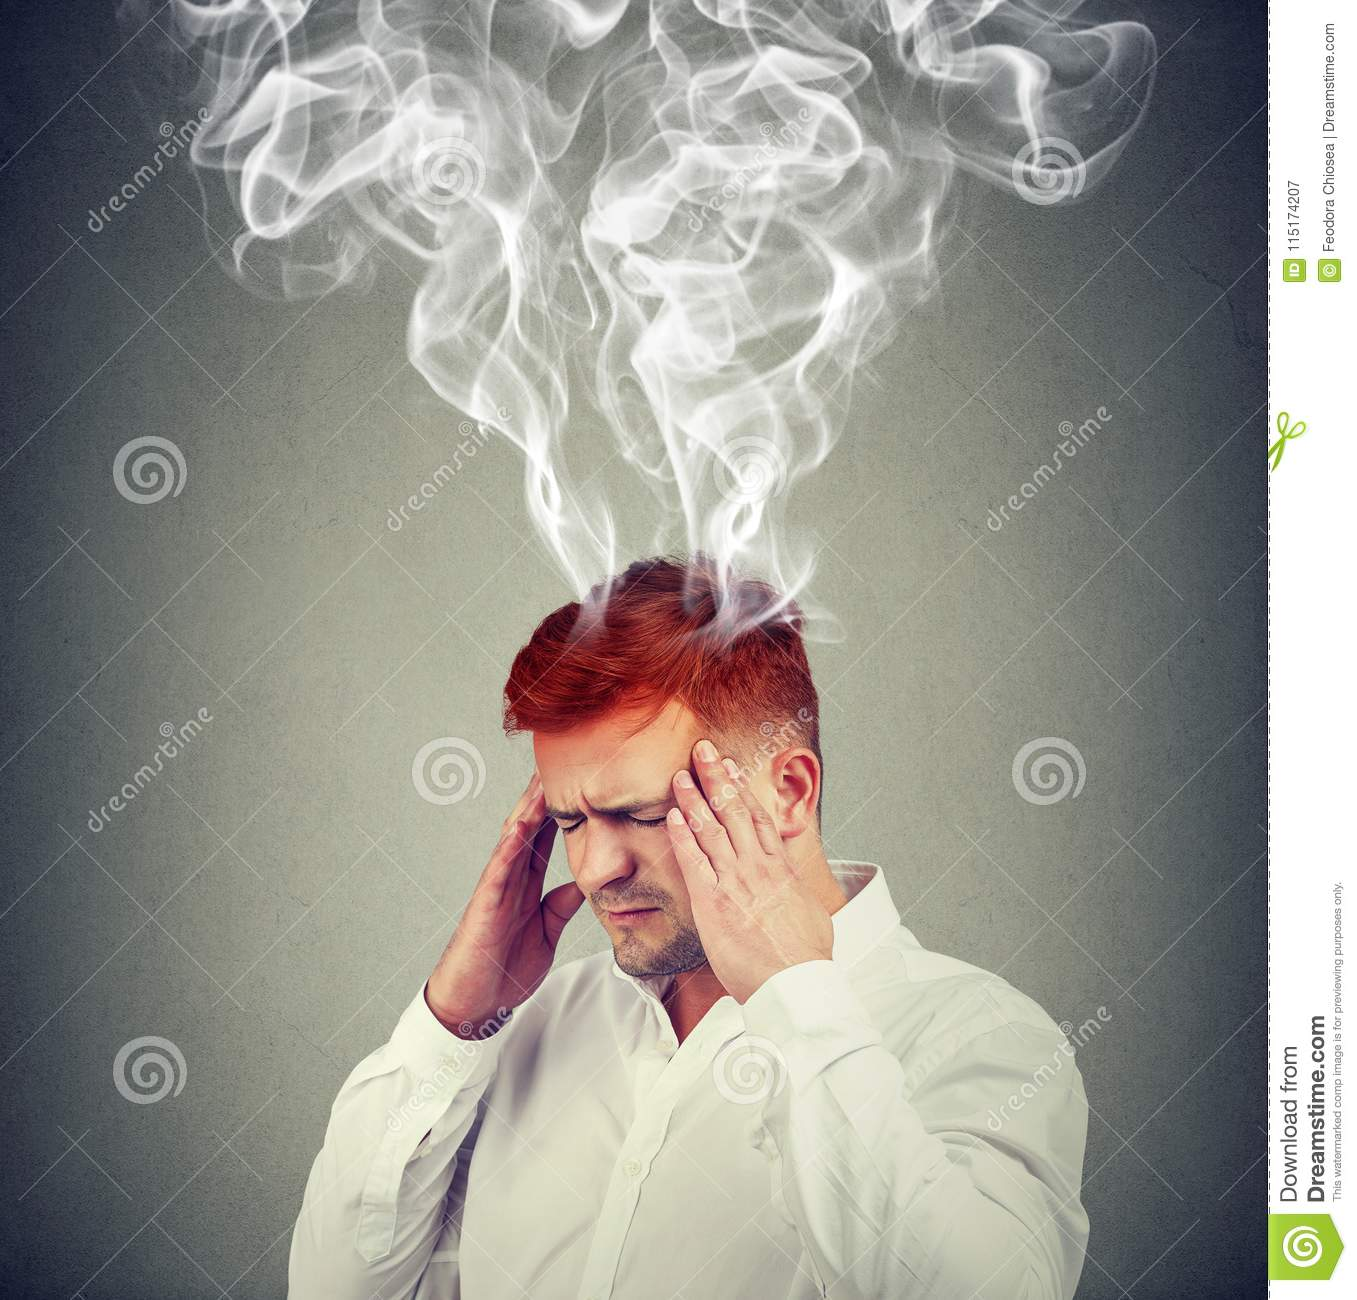 man-head-smoking-problems-conceptual-shot-holding-hands-temples-looking-frustrated-smoke-coming-out-115174207.jpg